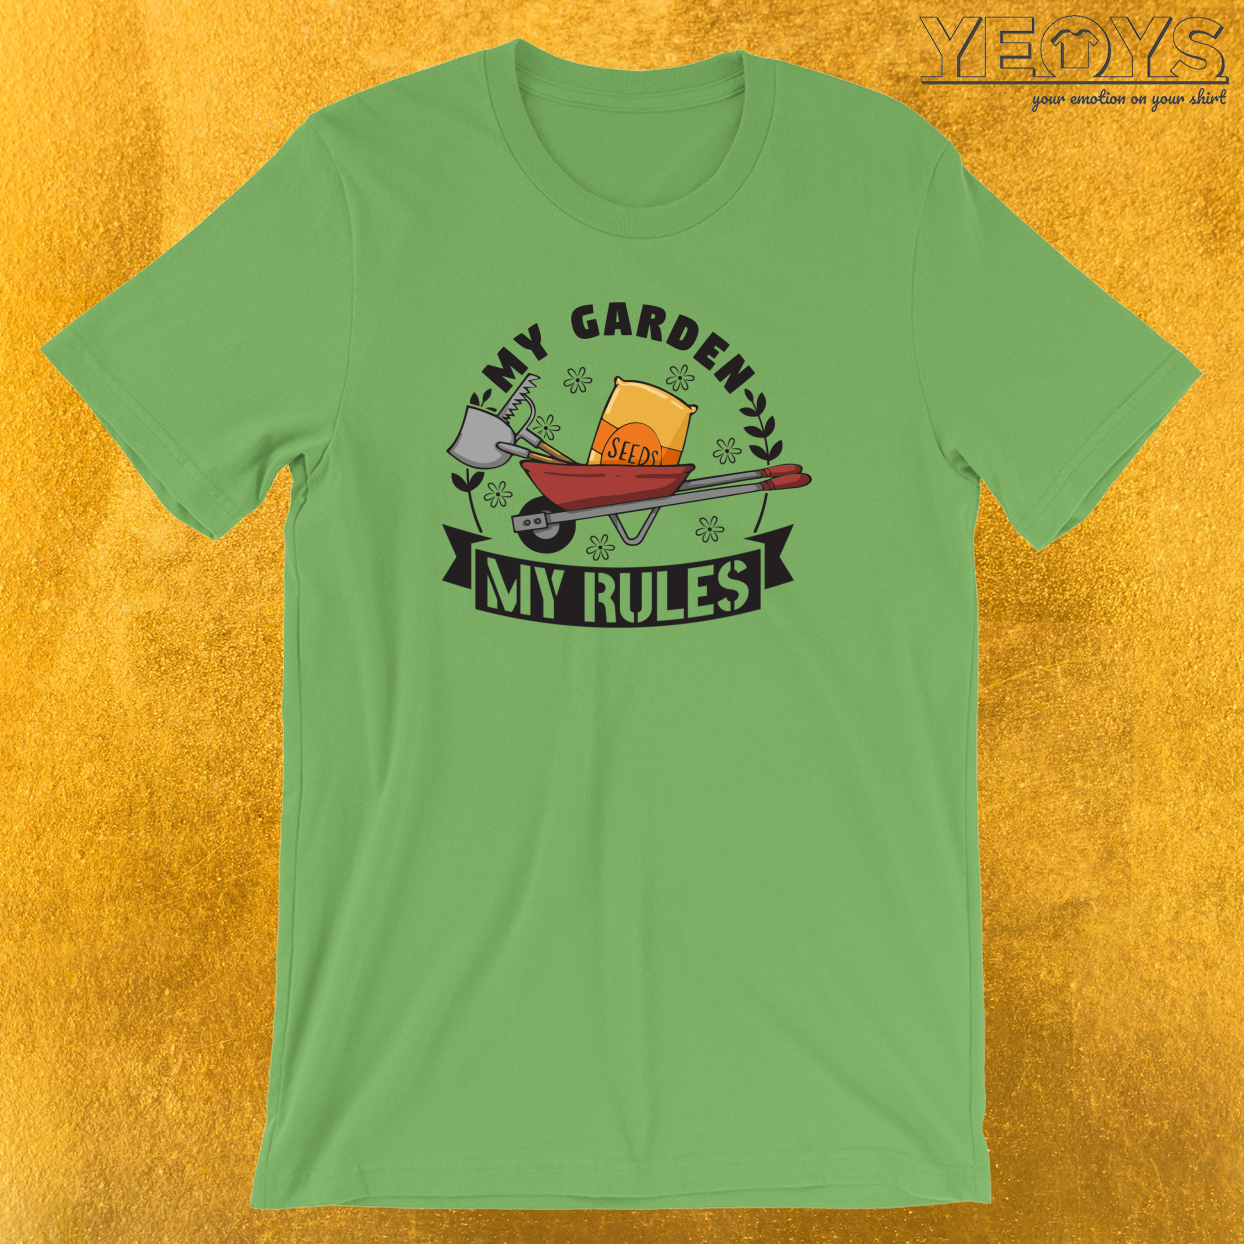 My Garden My Rules T-Shirt